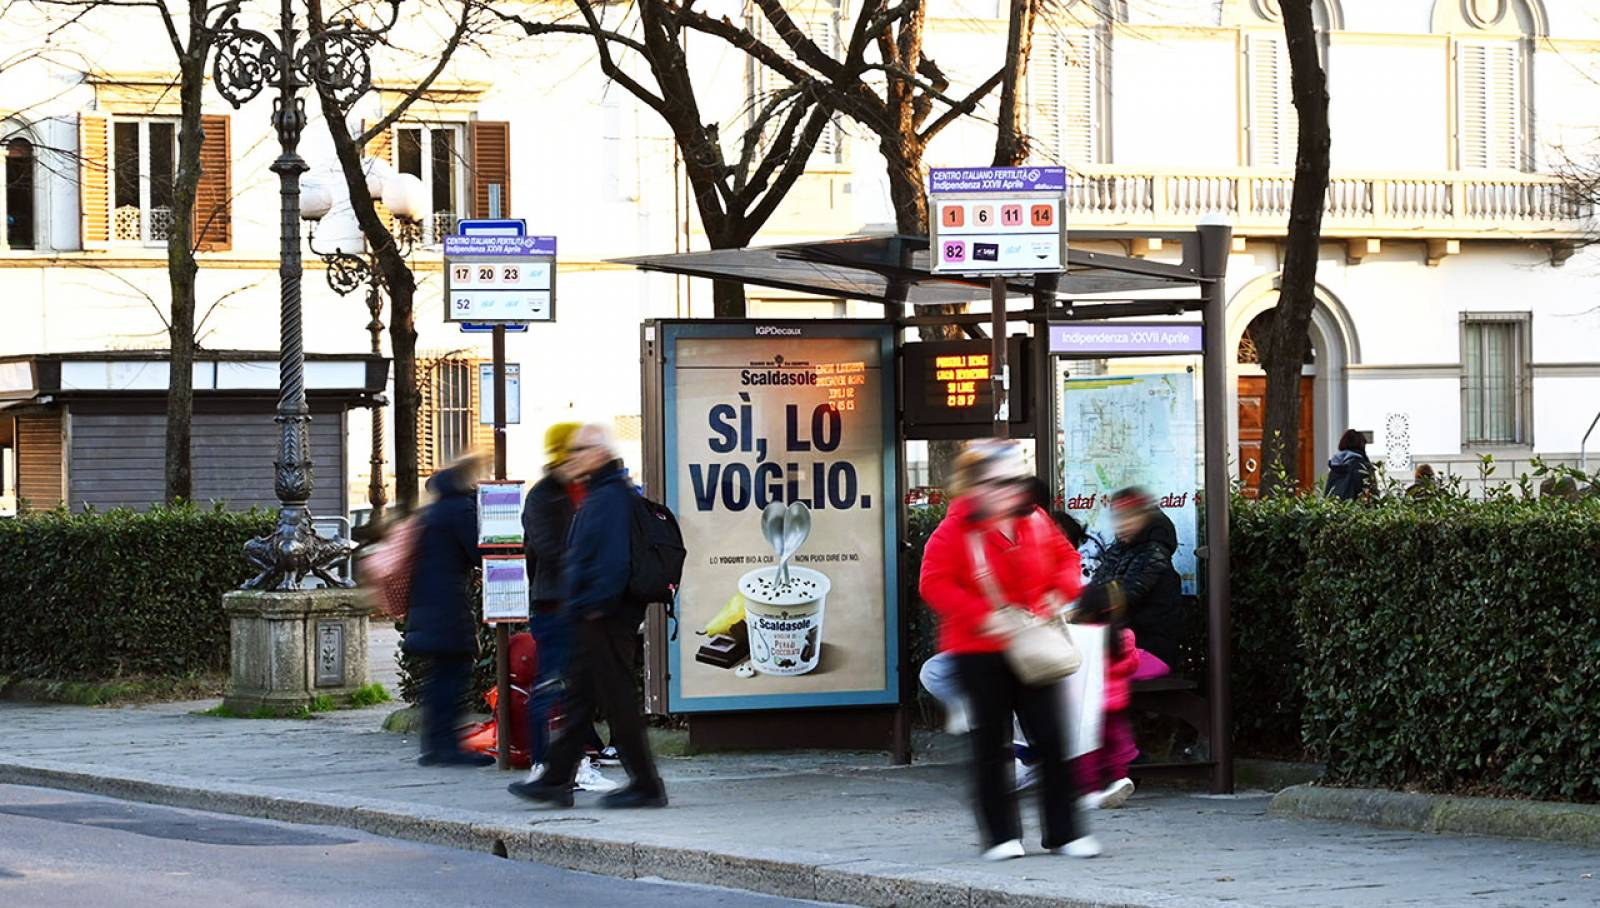 OOH advertising in Florence IGPDecaux Bus Shelters for Scaldasole